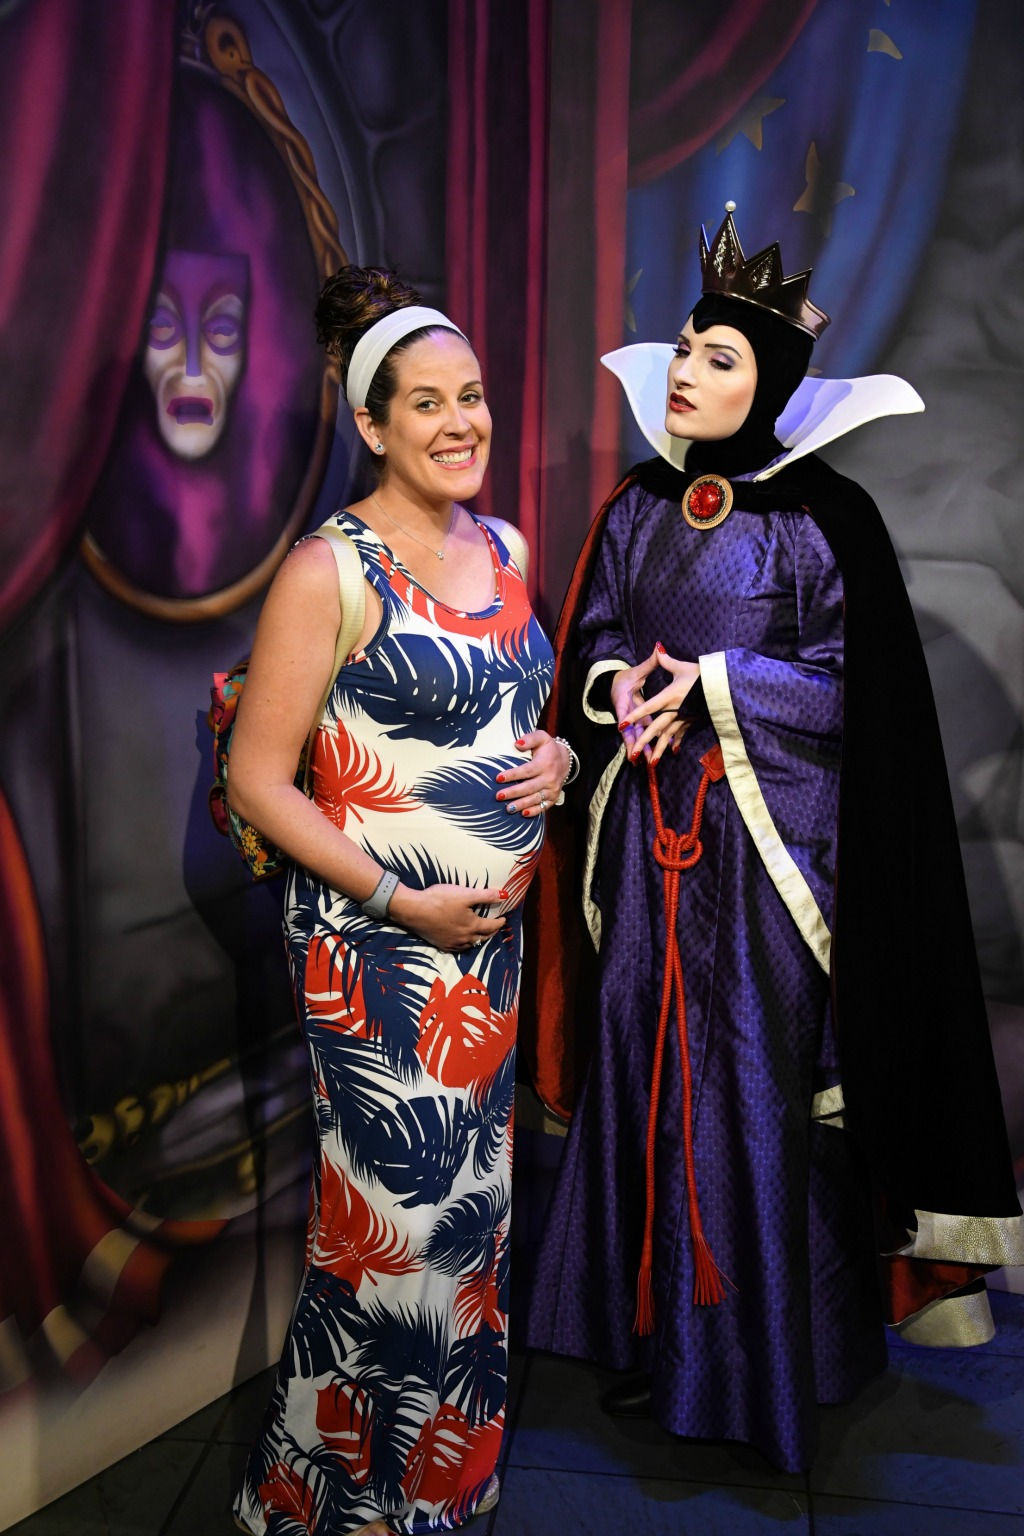 pregnant mom with Snow White's evil queen